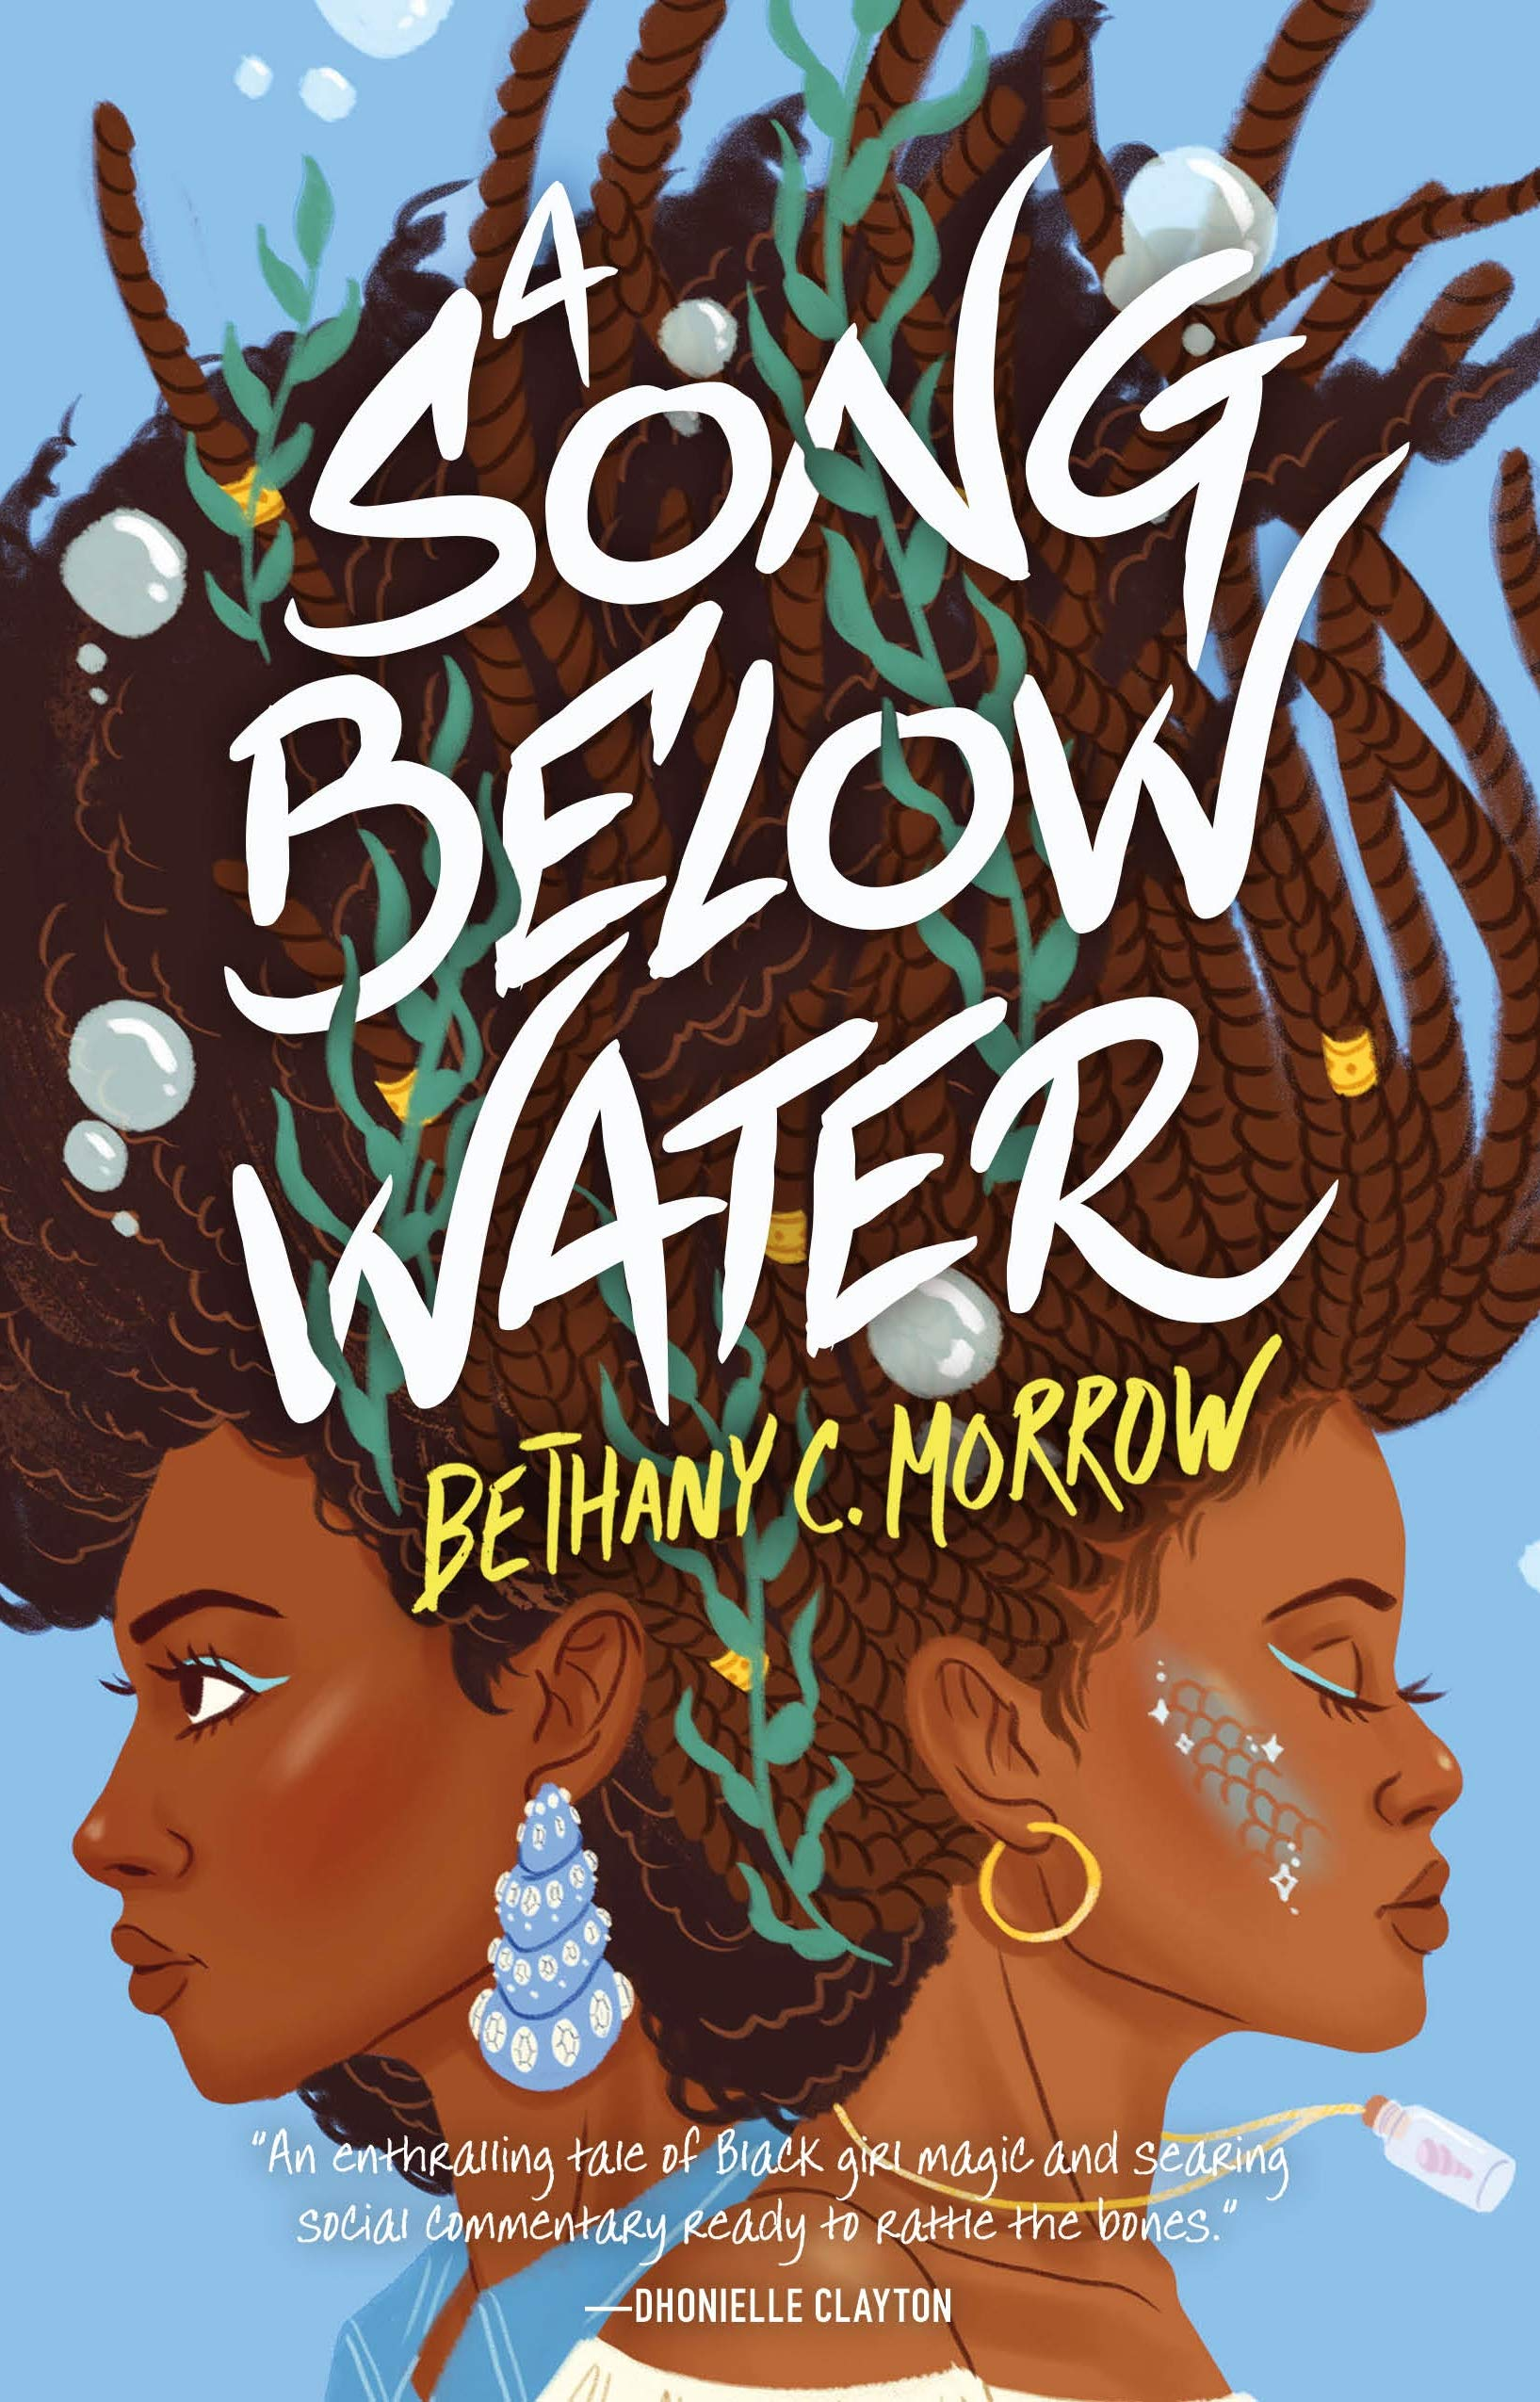 Amazon.com: A Song Below Water: A Novel (9781250315328): Morrow ...